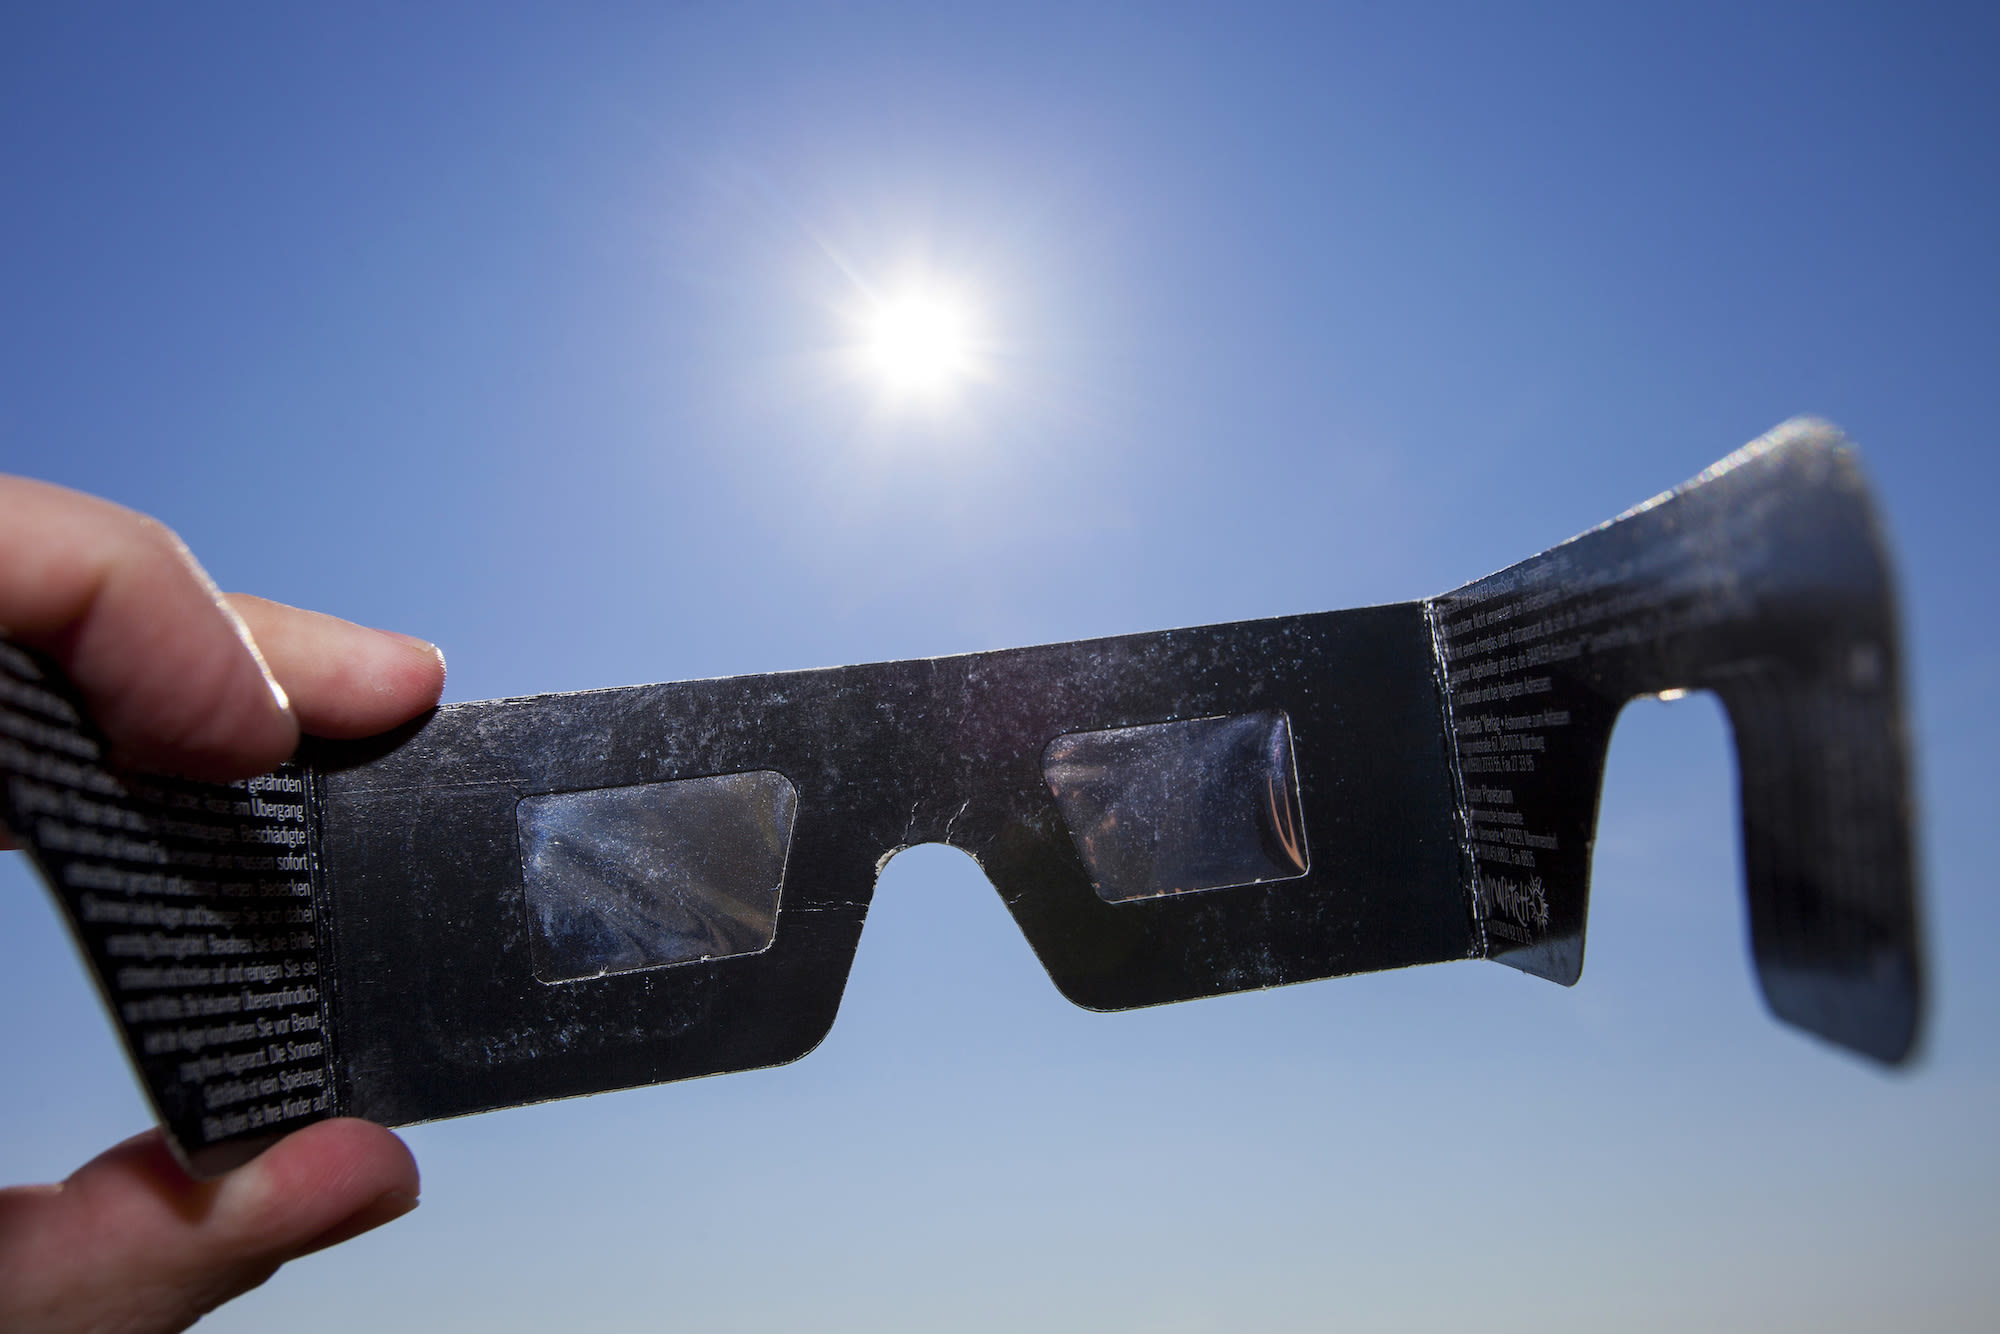 Eclipse glasses for protection from bright sunlight during a solar eclipse.  Photo: Adobe Stock / Bruno_A